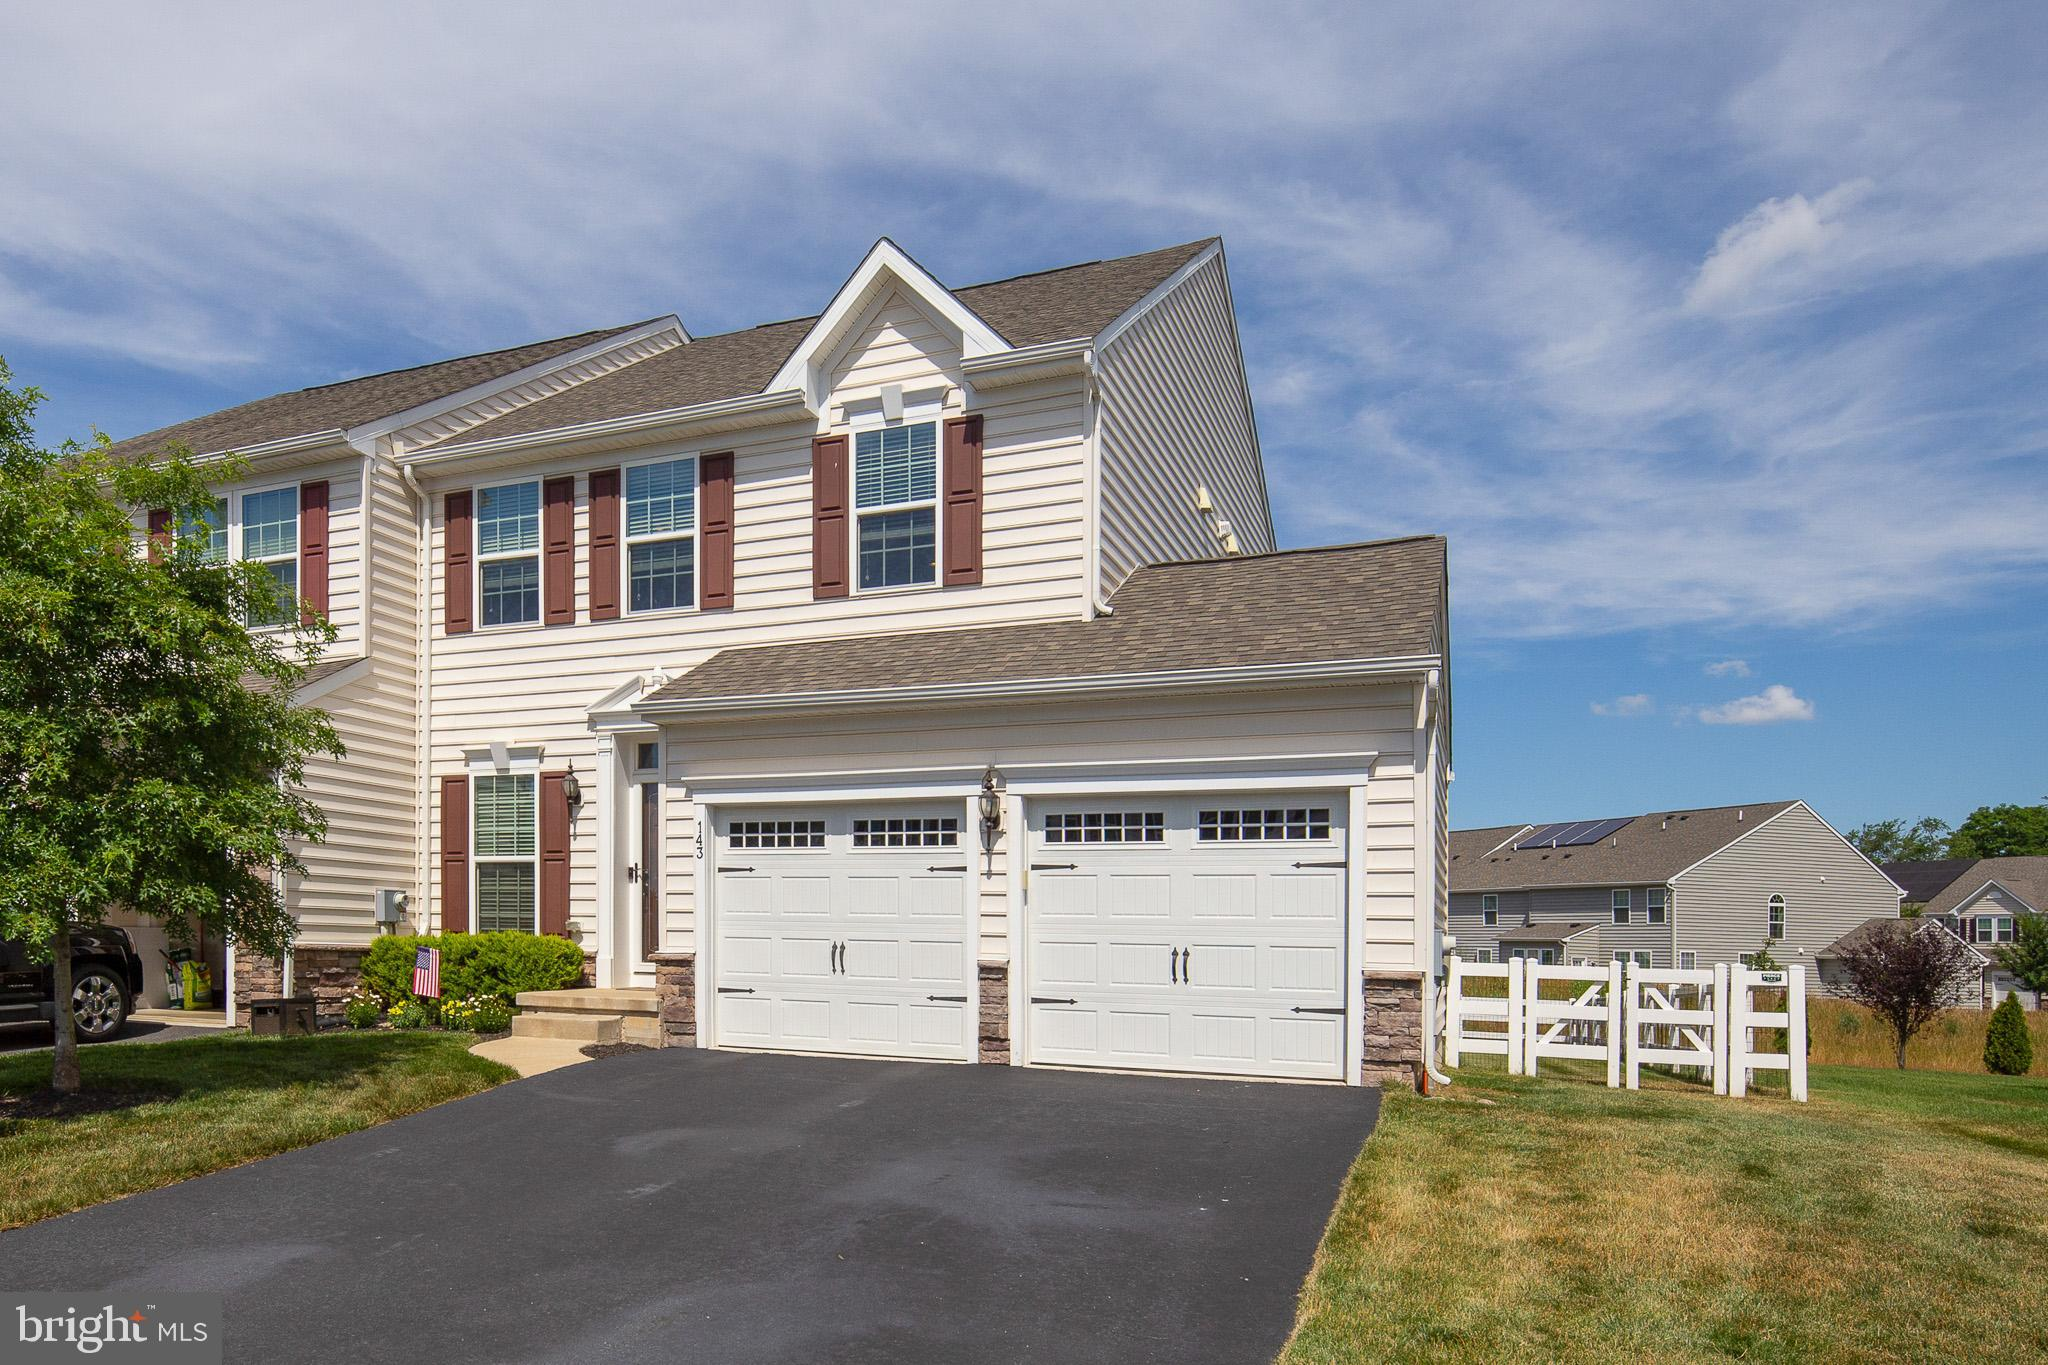 "Welcome to 143 Margaretta Drive located in Canal View!  This two story end unit townhome is only 5 years young and shows pride of ownership at every turn.  Featuring 2800 square feet of finished living space, this model has just about every option from the 2 car garage, finished basement, 4 foot bump out in the rear, maintenance free deck, fenced in rear yard backing to common space, and a rough in for a bathroom on the lower level.  As you enter the front door you will be greeted with the gleaming hardwood floors and flowing natural light through the modern and open floor plan.  In the kitchen you will find granite countertops, 42"" cabinetry, SS appliances, and just off the kitchen you will find a nice sized deck perfect for entertaining outdoors. Heading upstairs you will find 3 generously sized bedrooms all with ceiling fans.  The master suite features a vaulted ceiling, a double vanity, as well as a tiled shower with a glass door enclosure.  Heading back down to the lower level you will find the finished basement offering additional space and storage for any of your needs.  Put this home on your list, it will not disappoint."